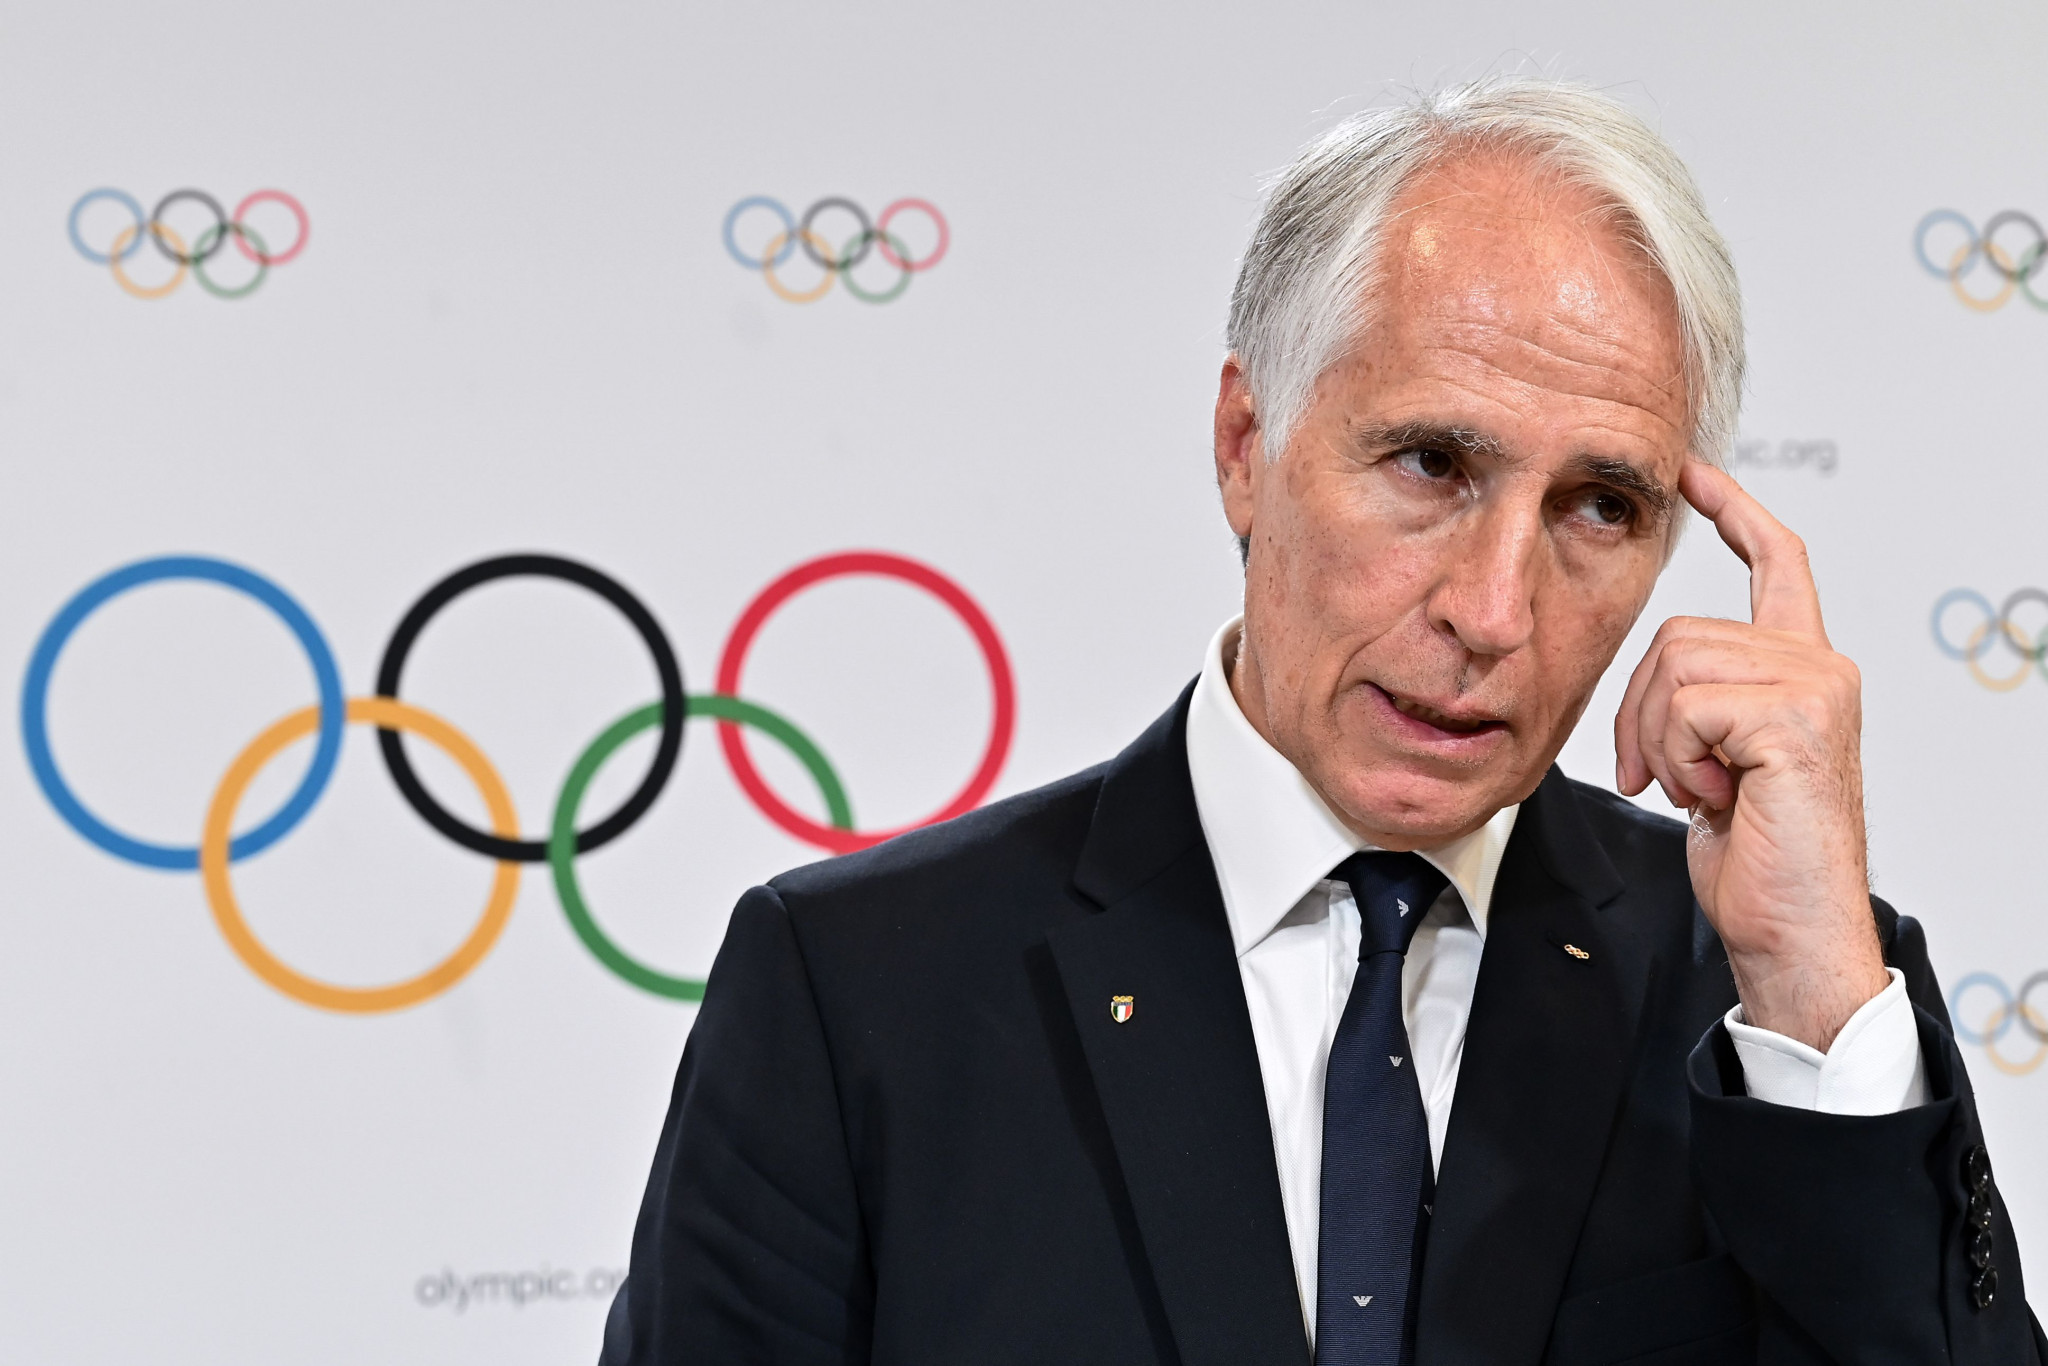 The hard work starts now for Giovanni Malagò, who having led the successful bid will now be President of the Milan Cortina 2026 Organising Committee ©Getty Images